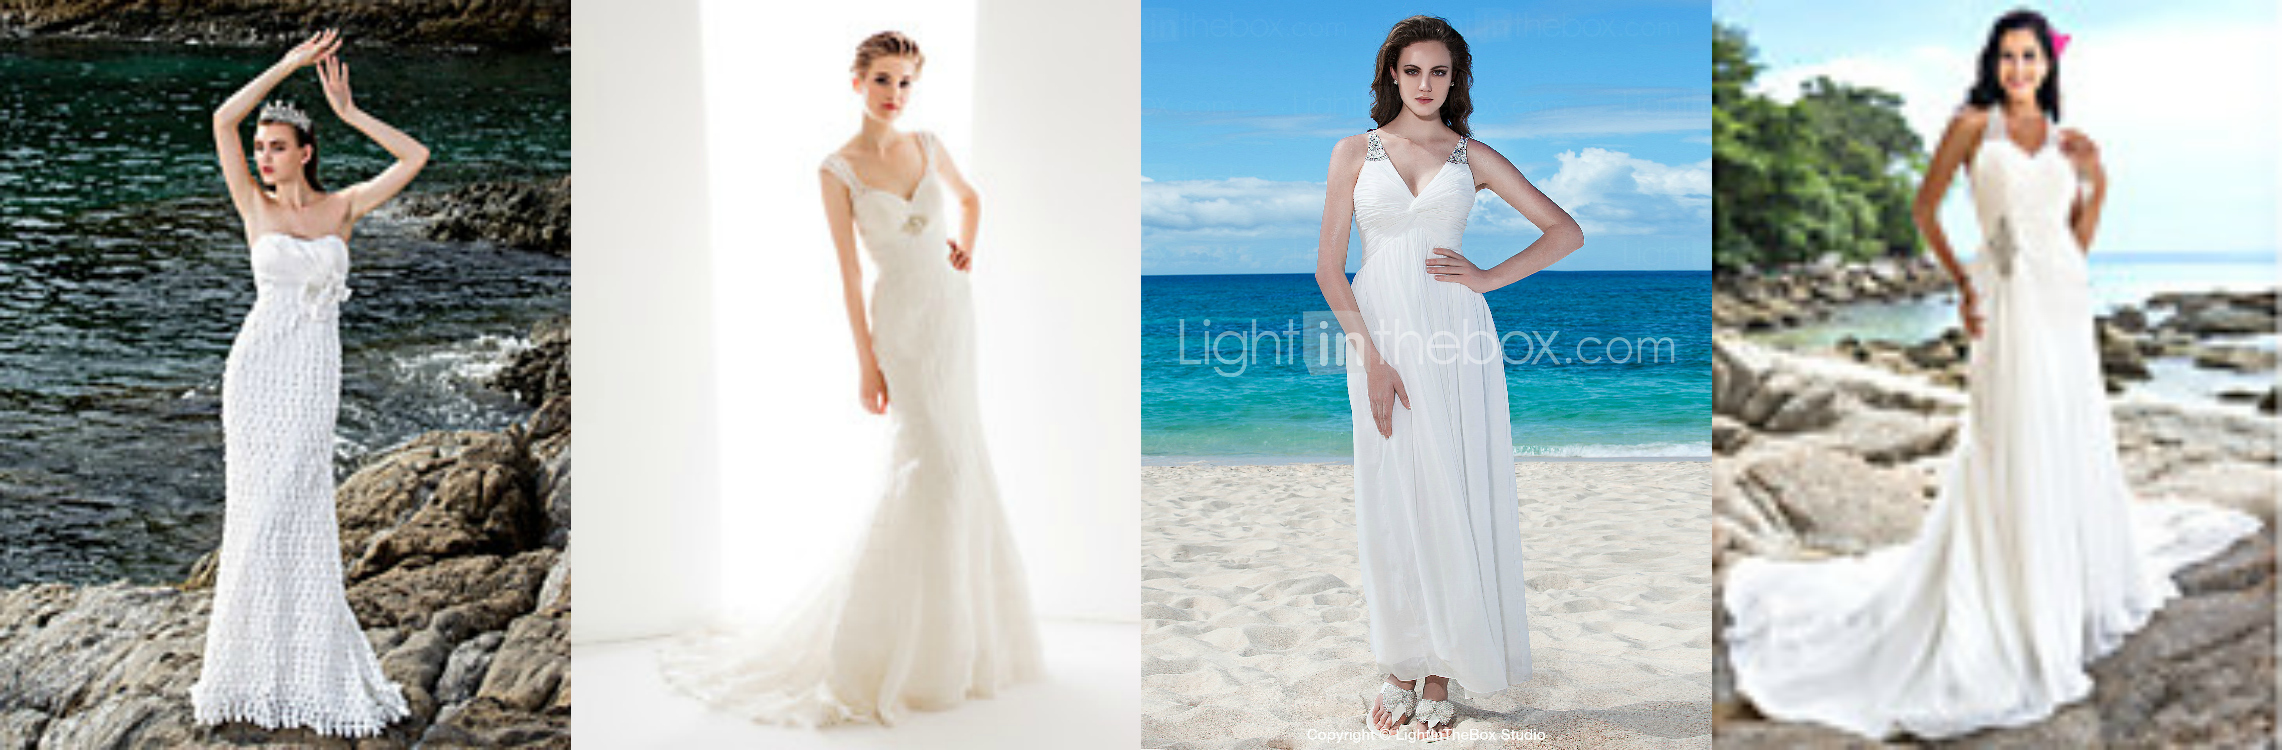 Wedding Dresses For Woman - Wedding Guest Dresses